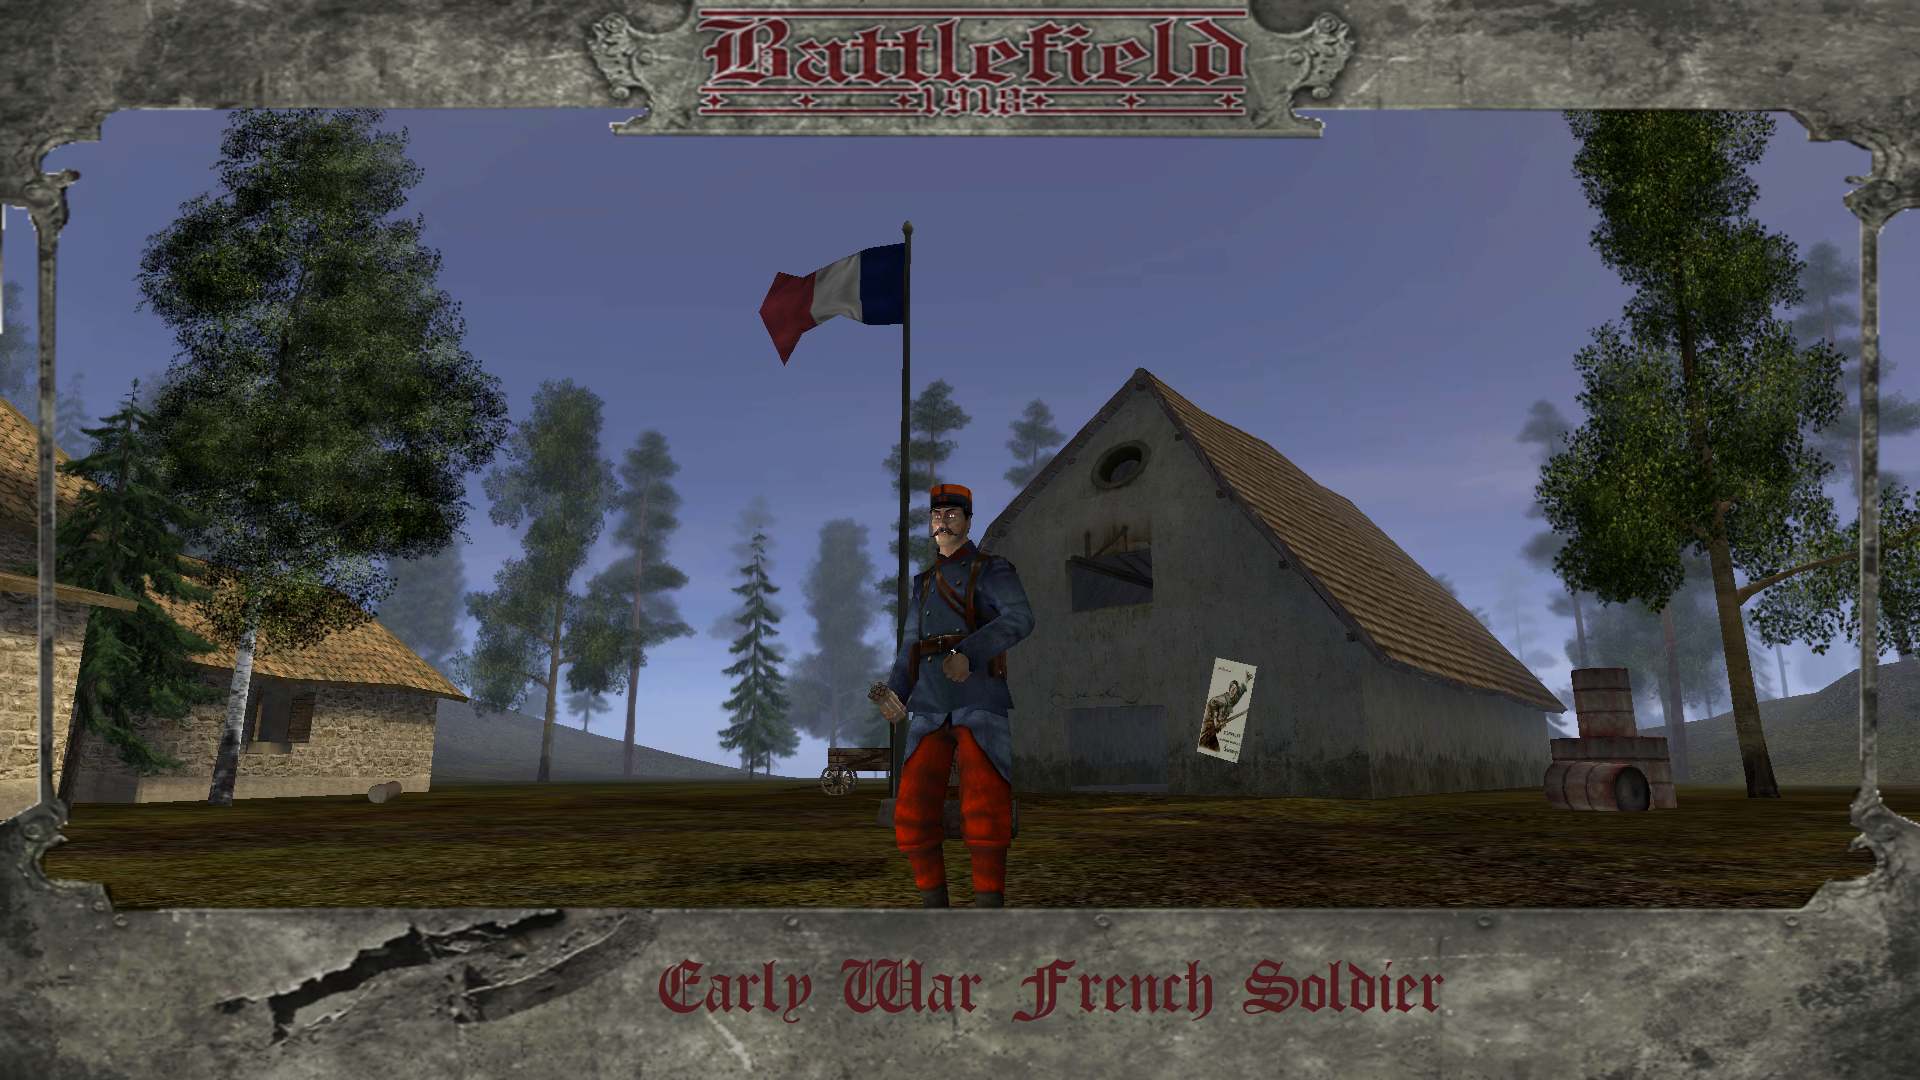 Early War French Soldier